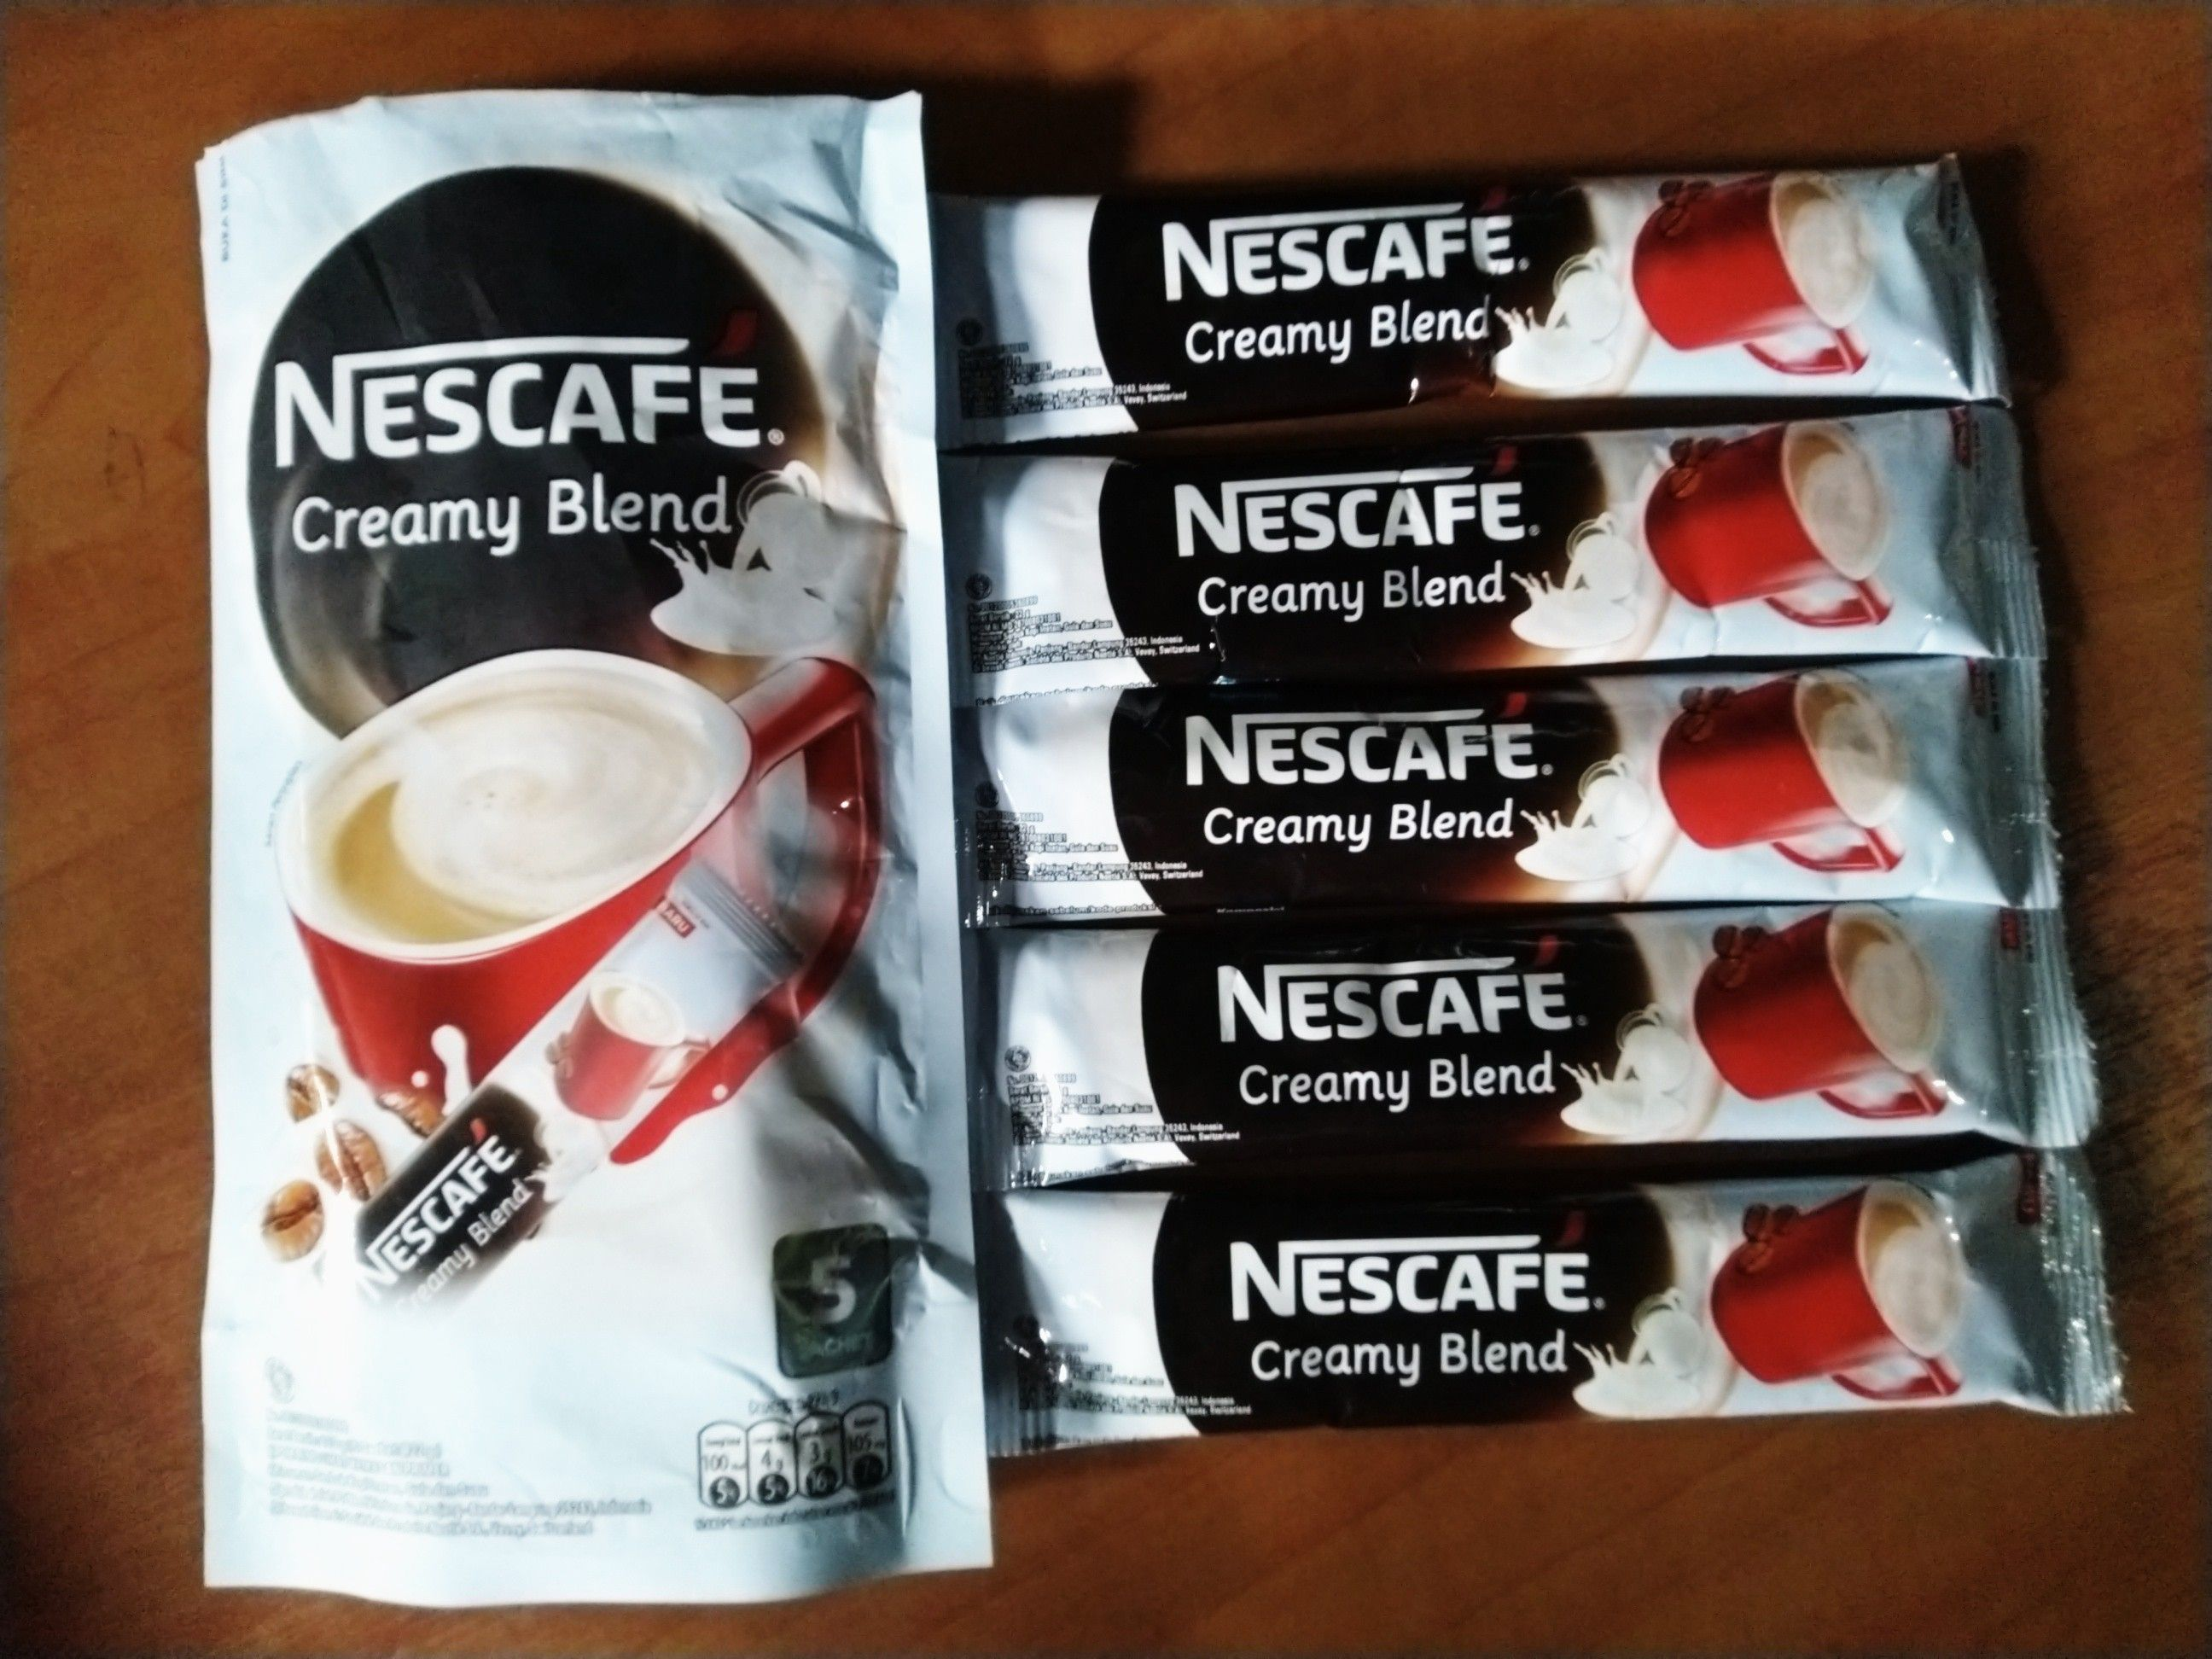 image review Nescafe Creamy Blend